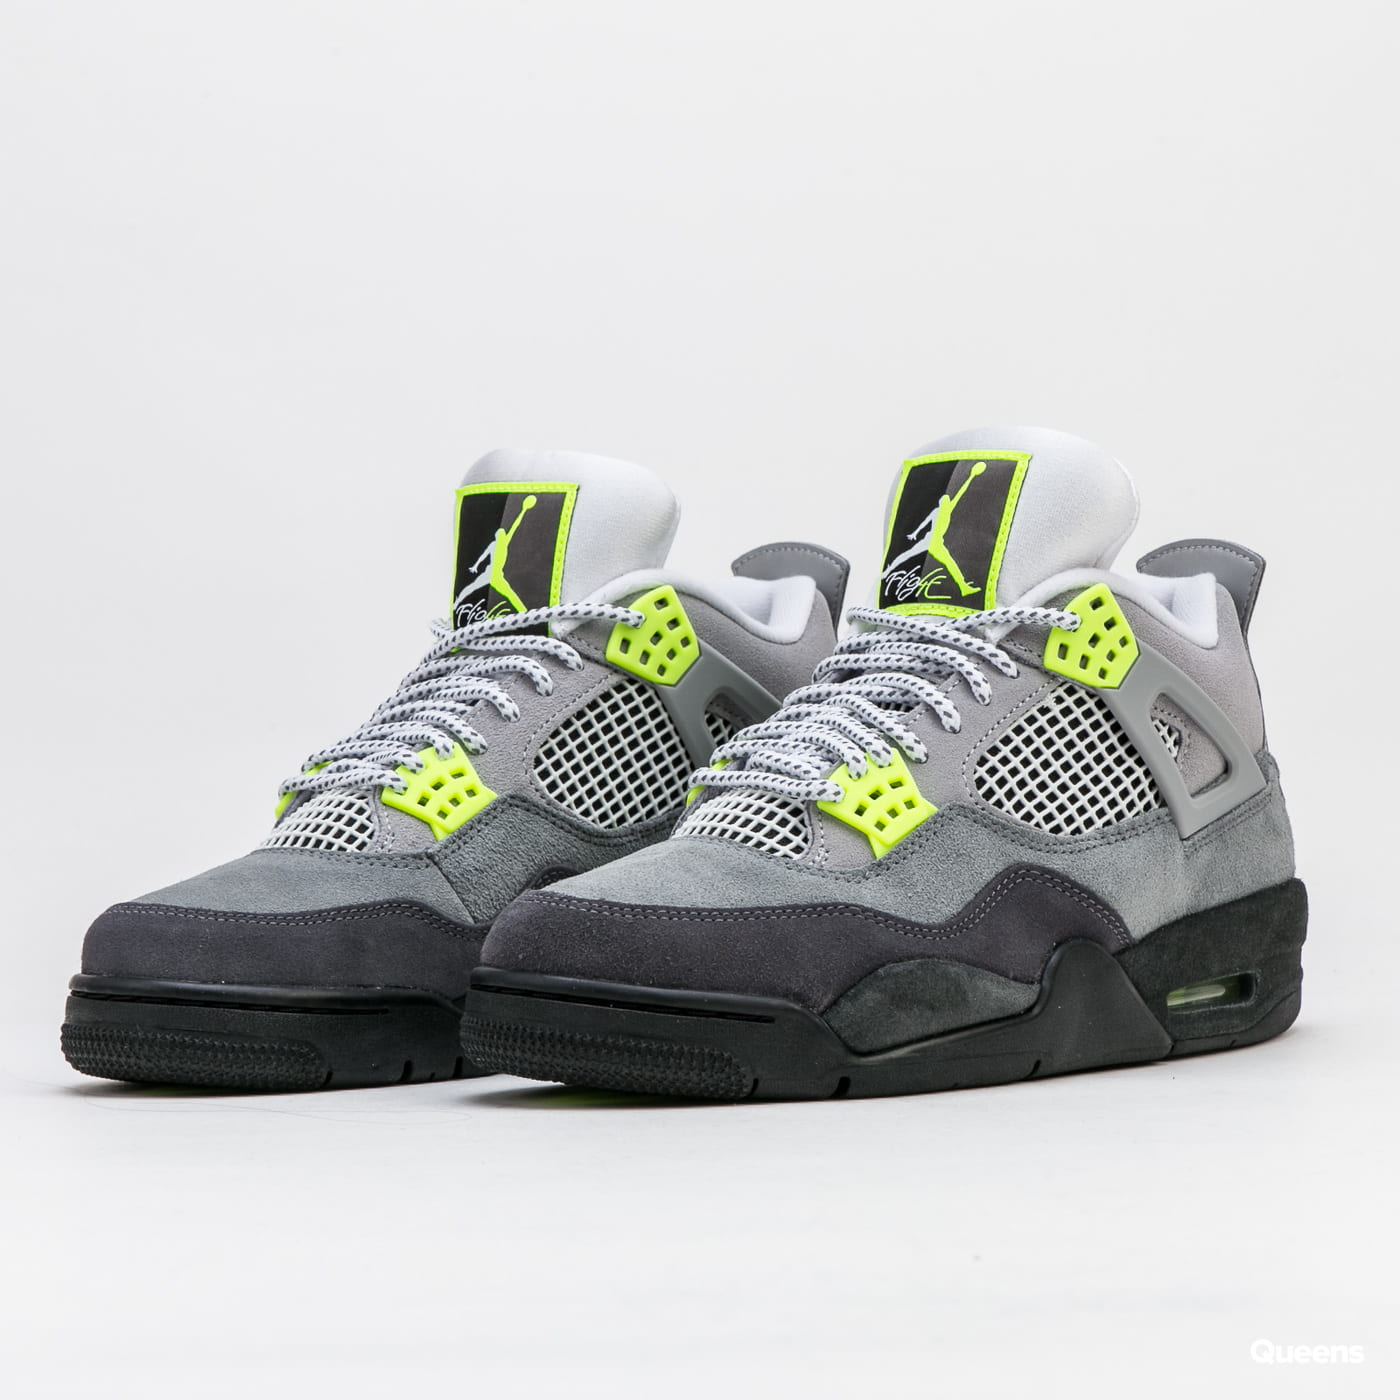 Jordan Air Jordan 4 Retro SE cool grey / volt - wolf grey